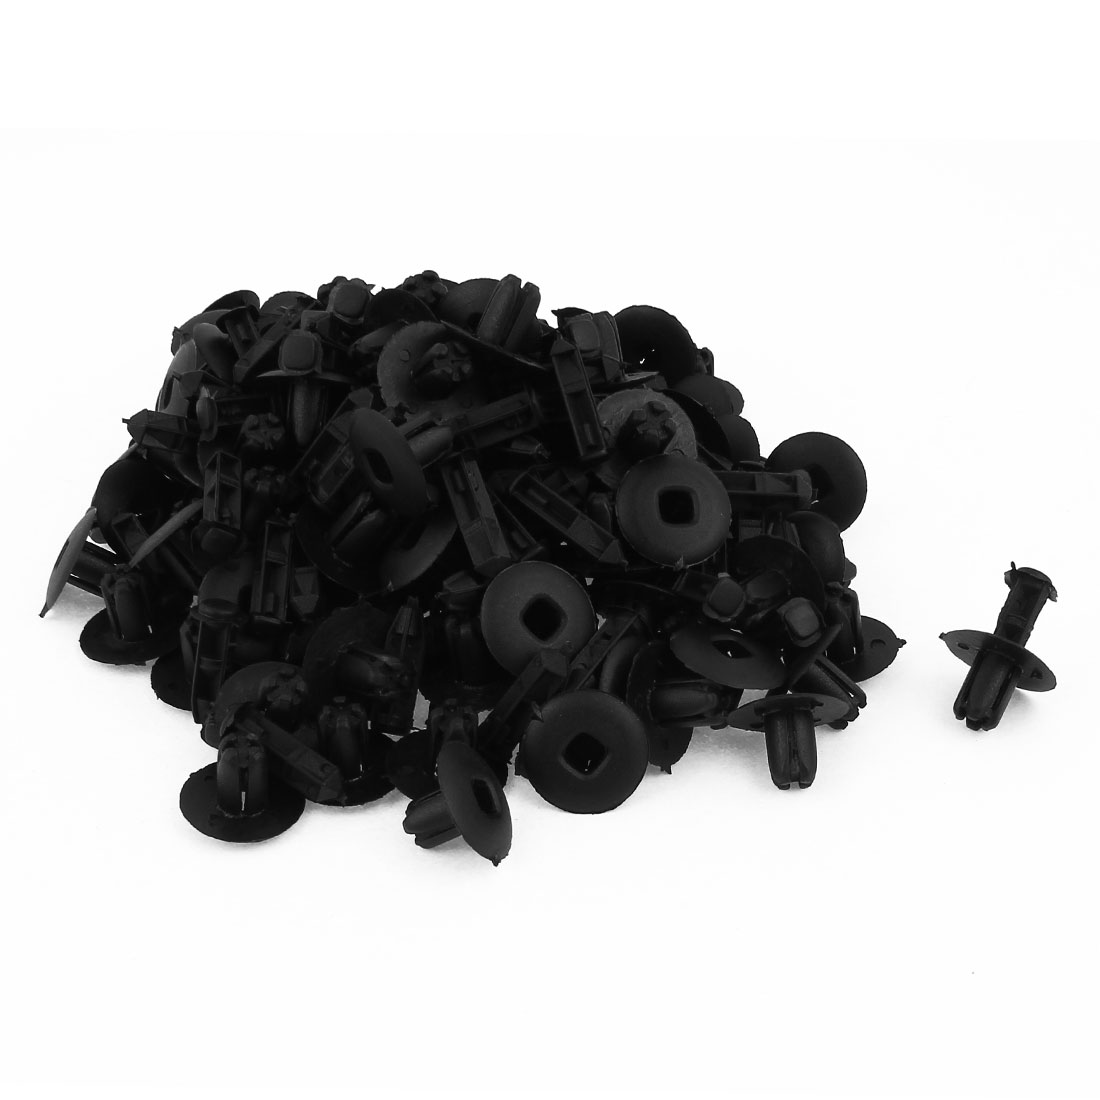 Auto 8mm Hole Black Plastic Rivets Fastener Bumper Push Clips 100 Pcs